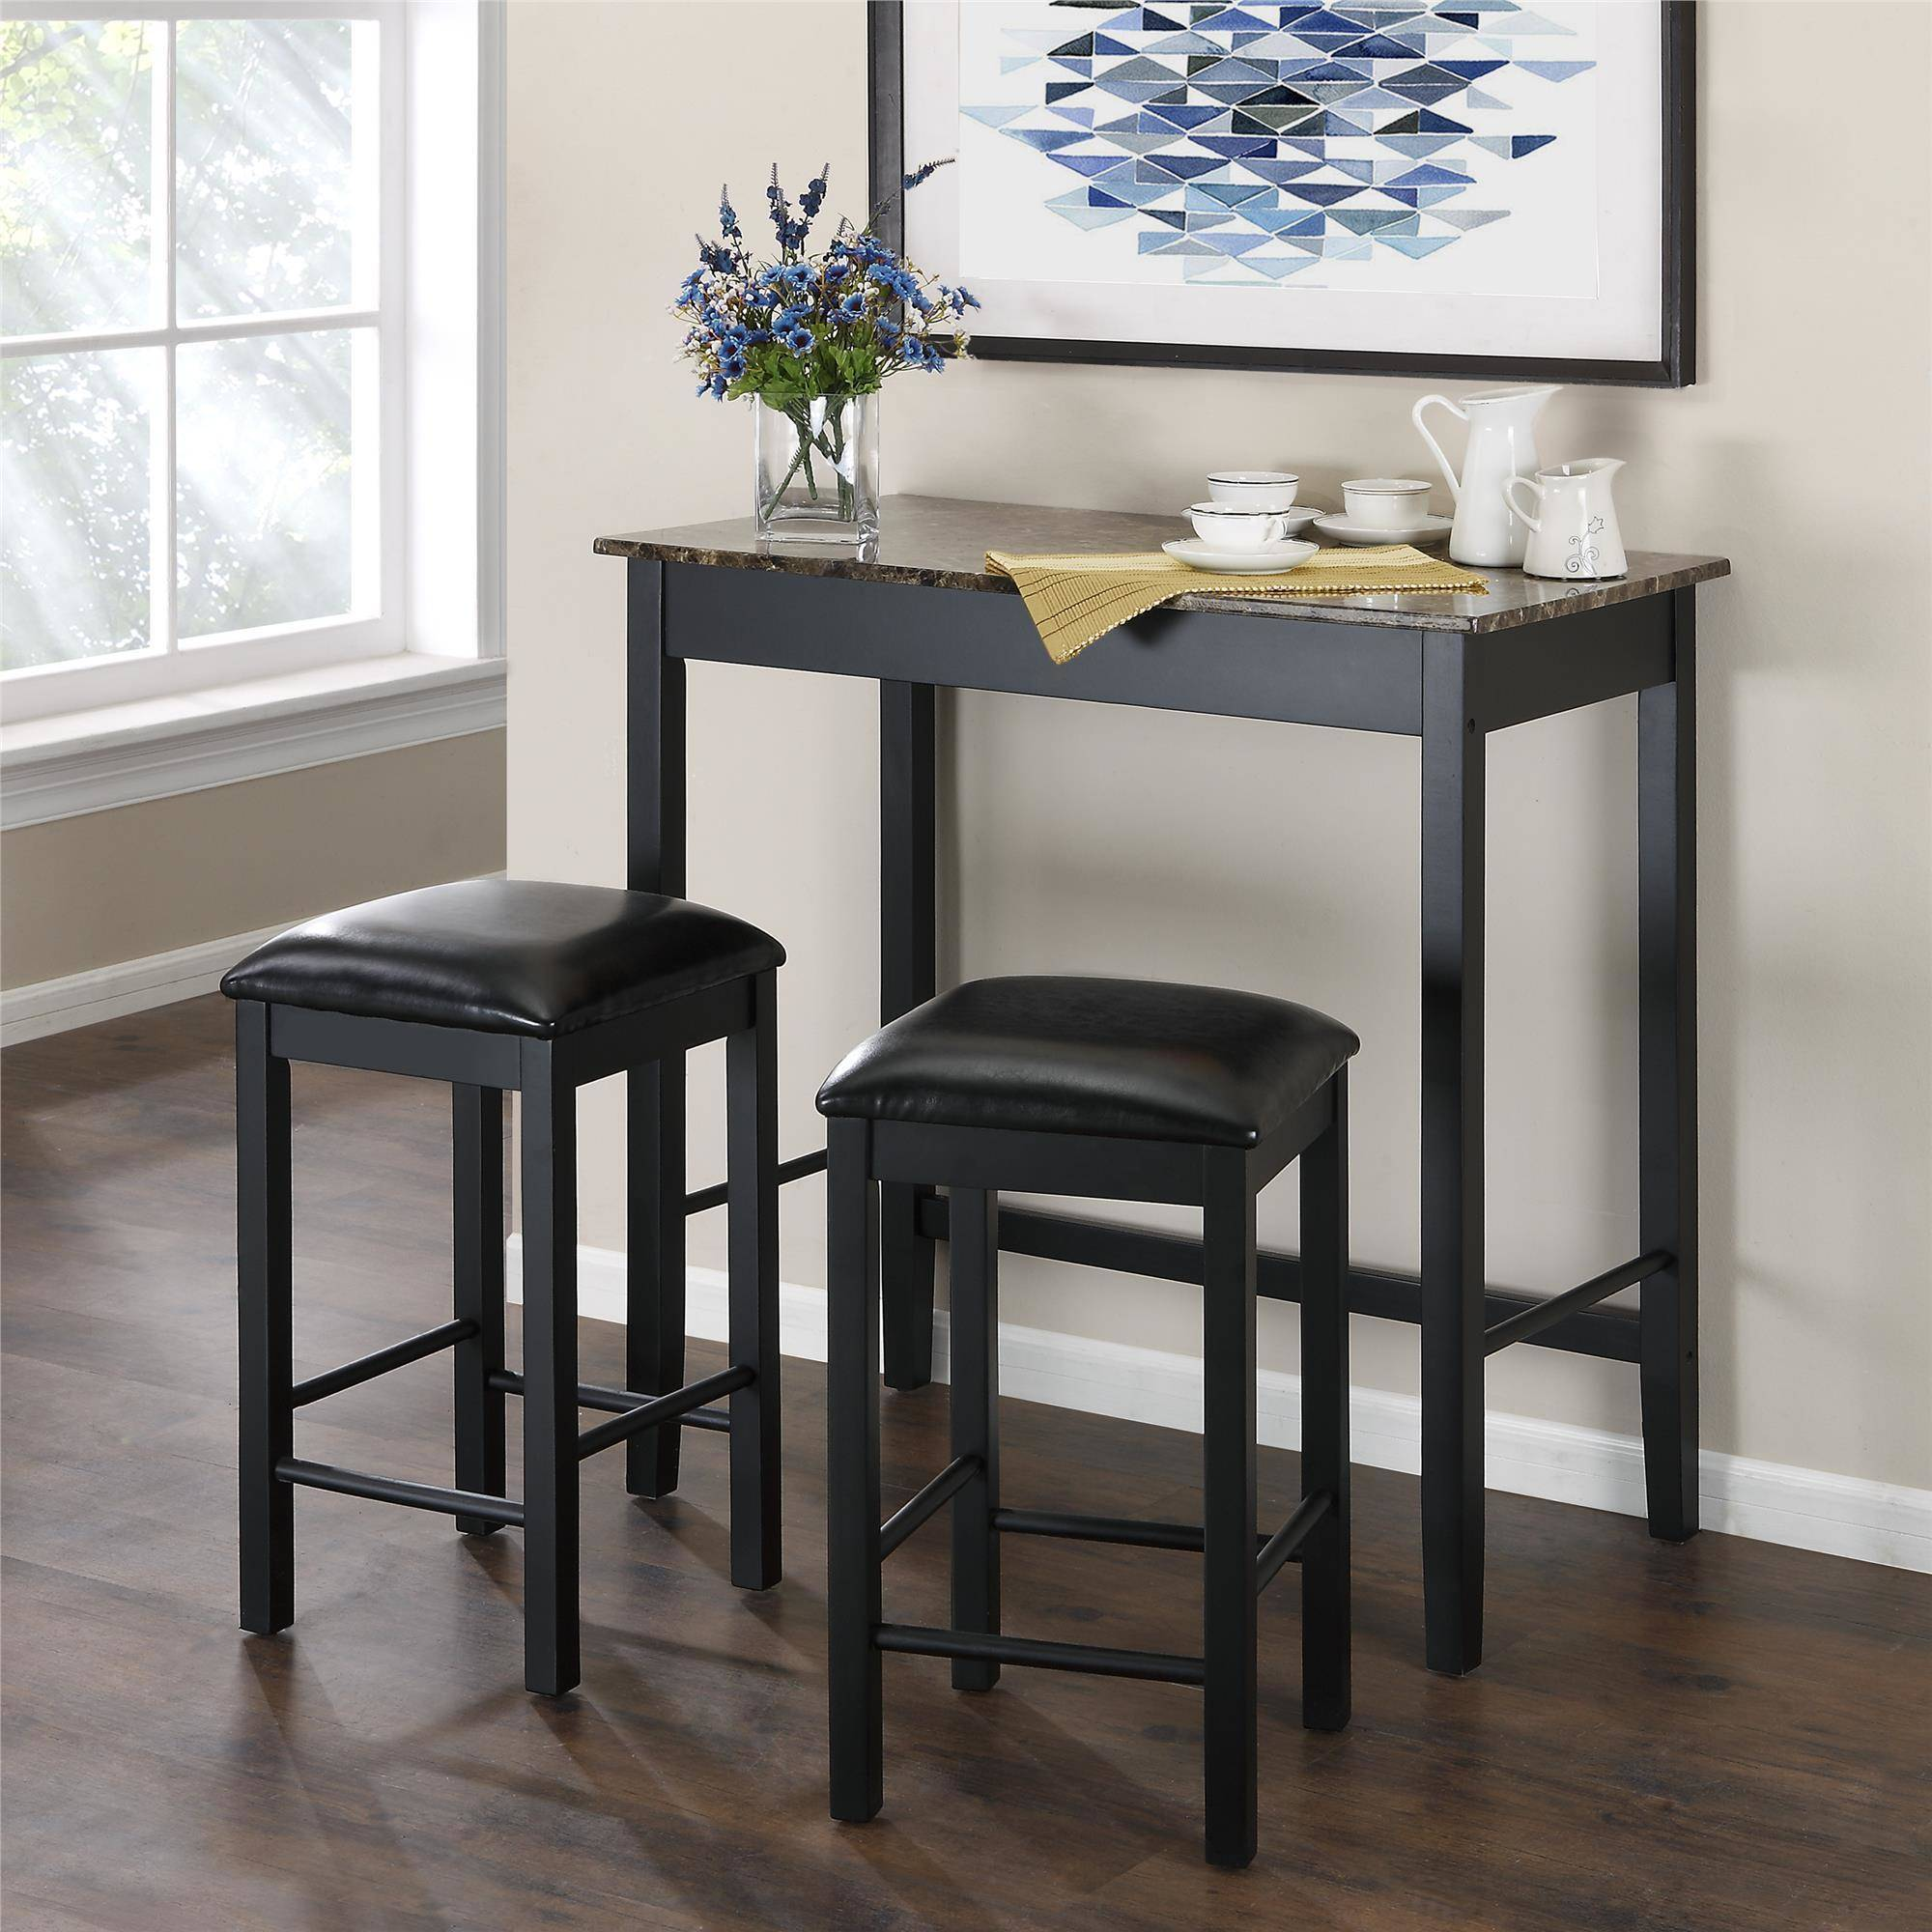 Dorel living devyn 3 piece faux marble pub dining set black walmart com